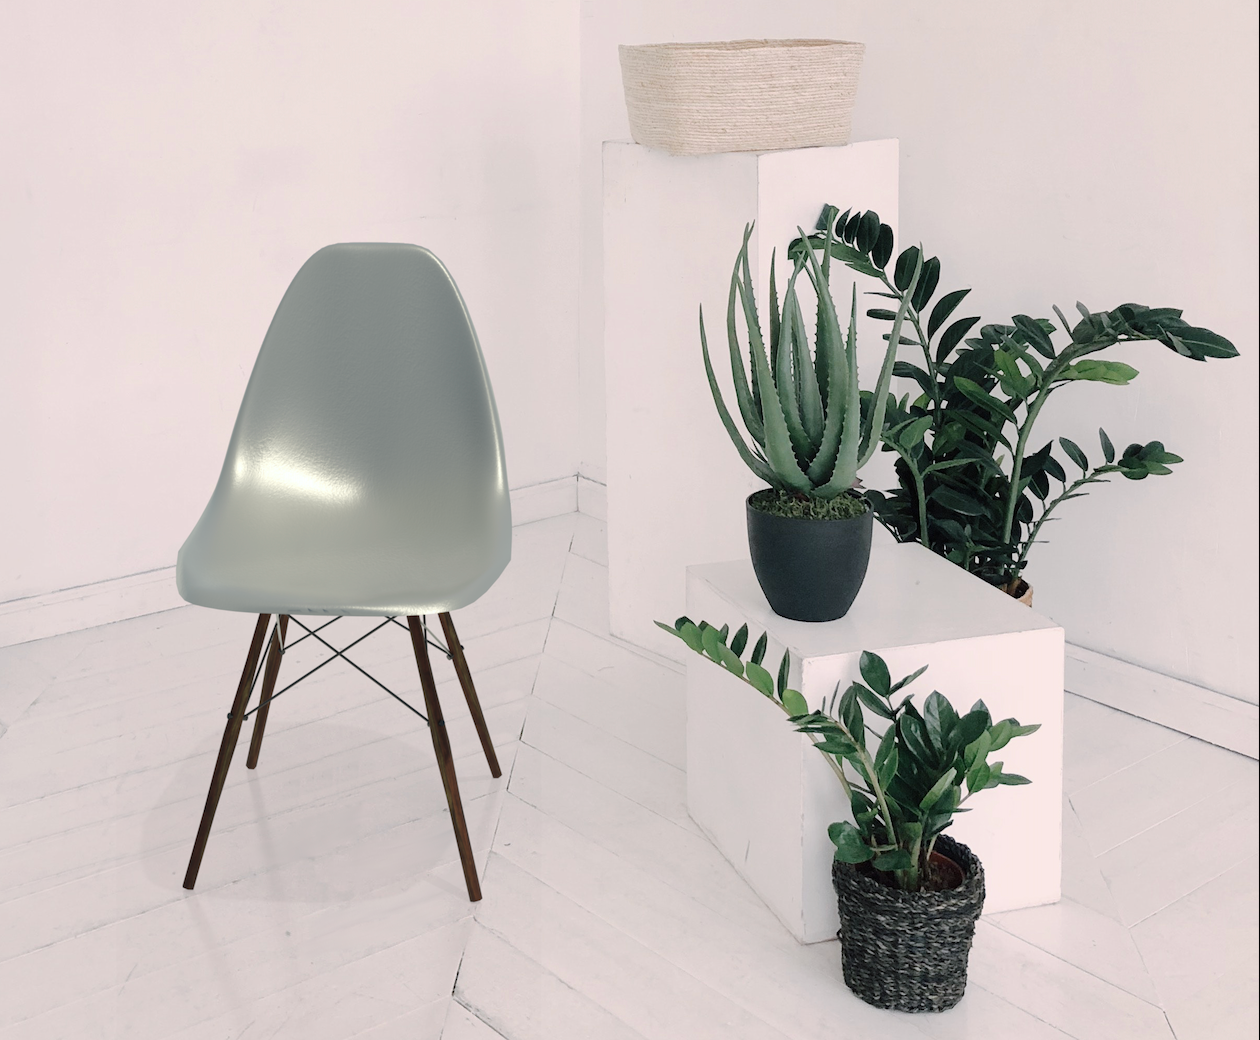 Rendering of the Eames Shell Chair Revit family with surrounding fauna.